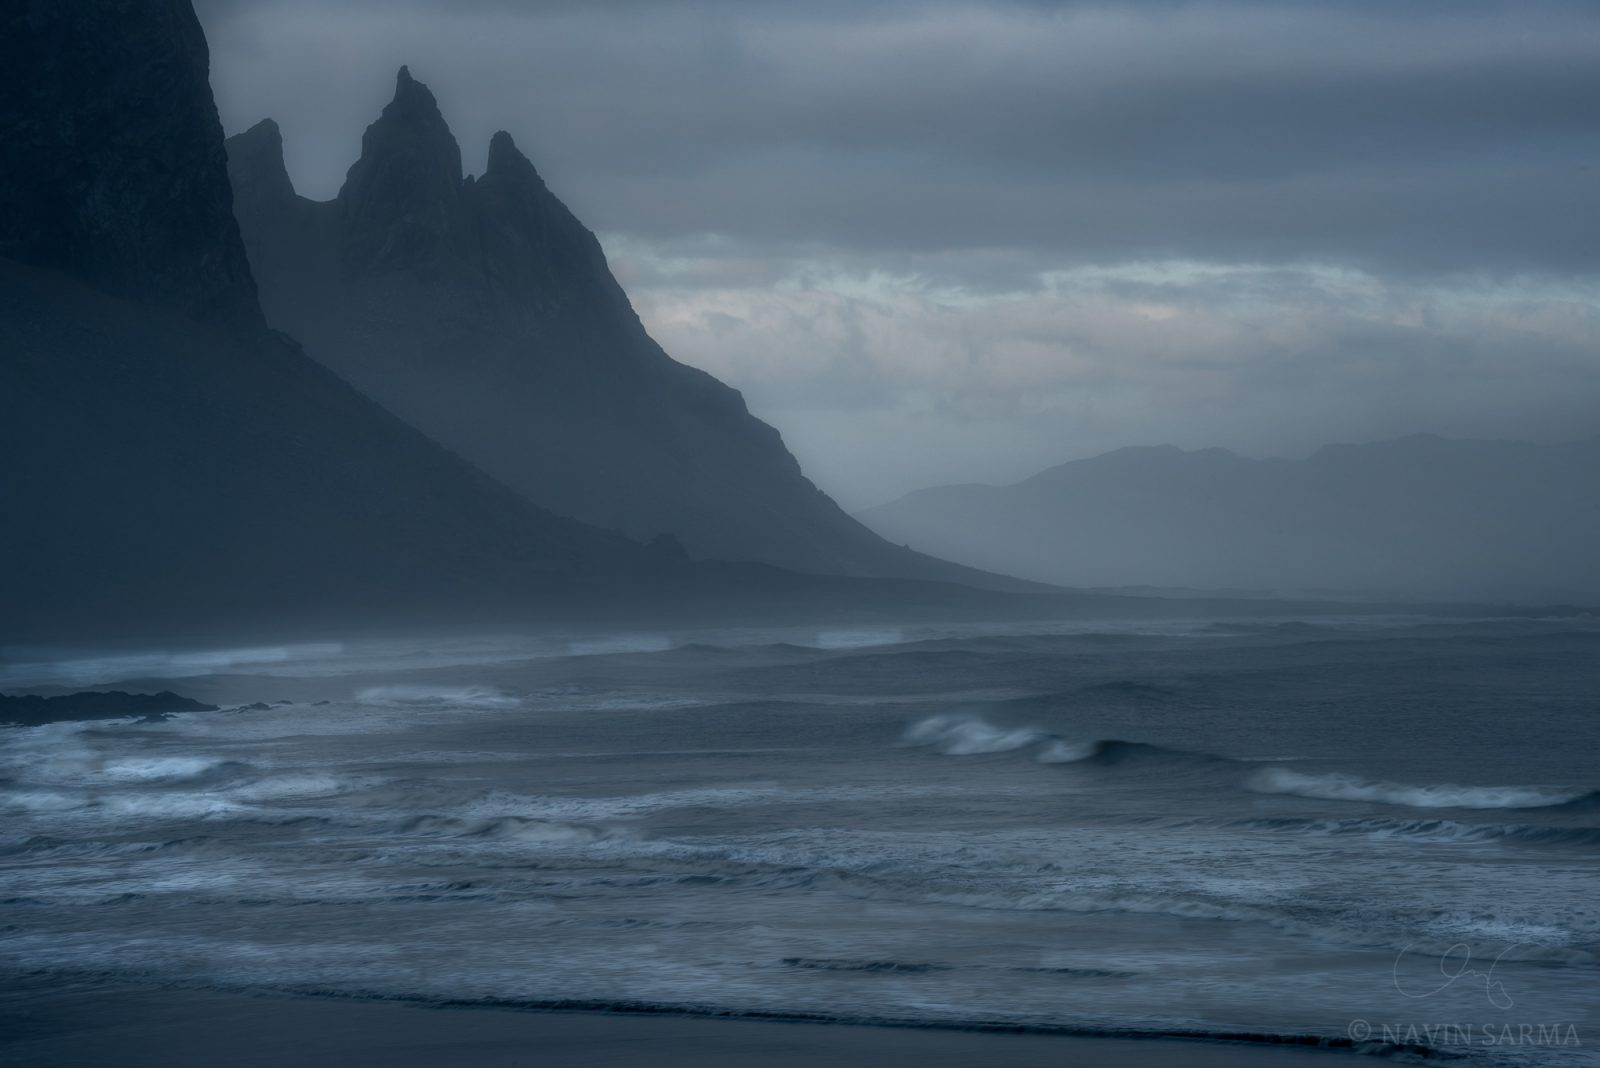 Peaks and waves rise in the distance at Vesturhorn mountain